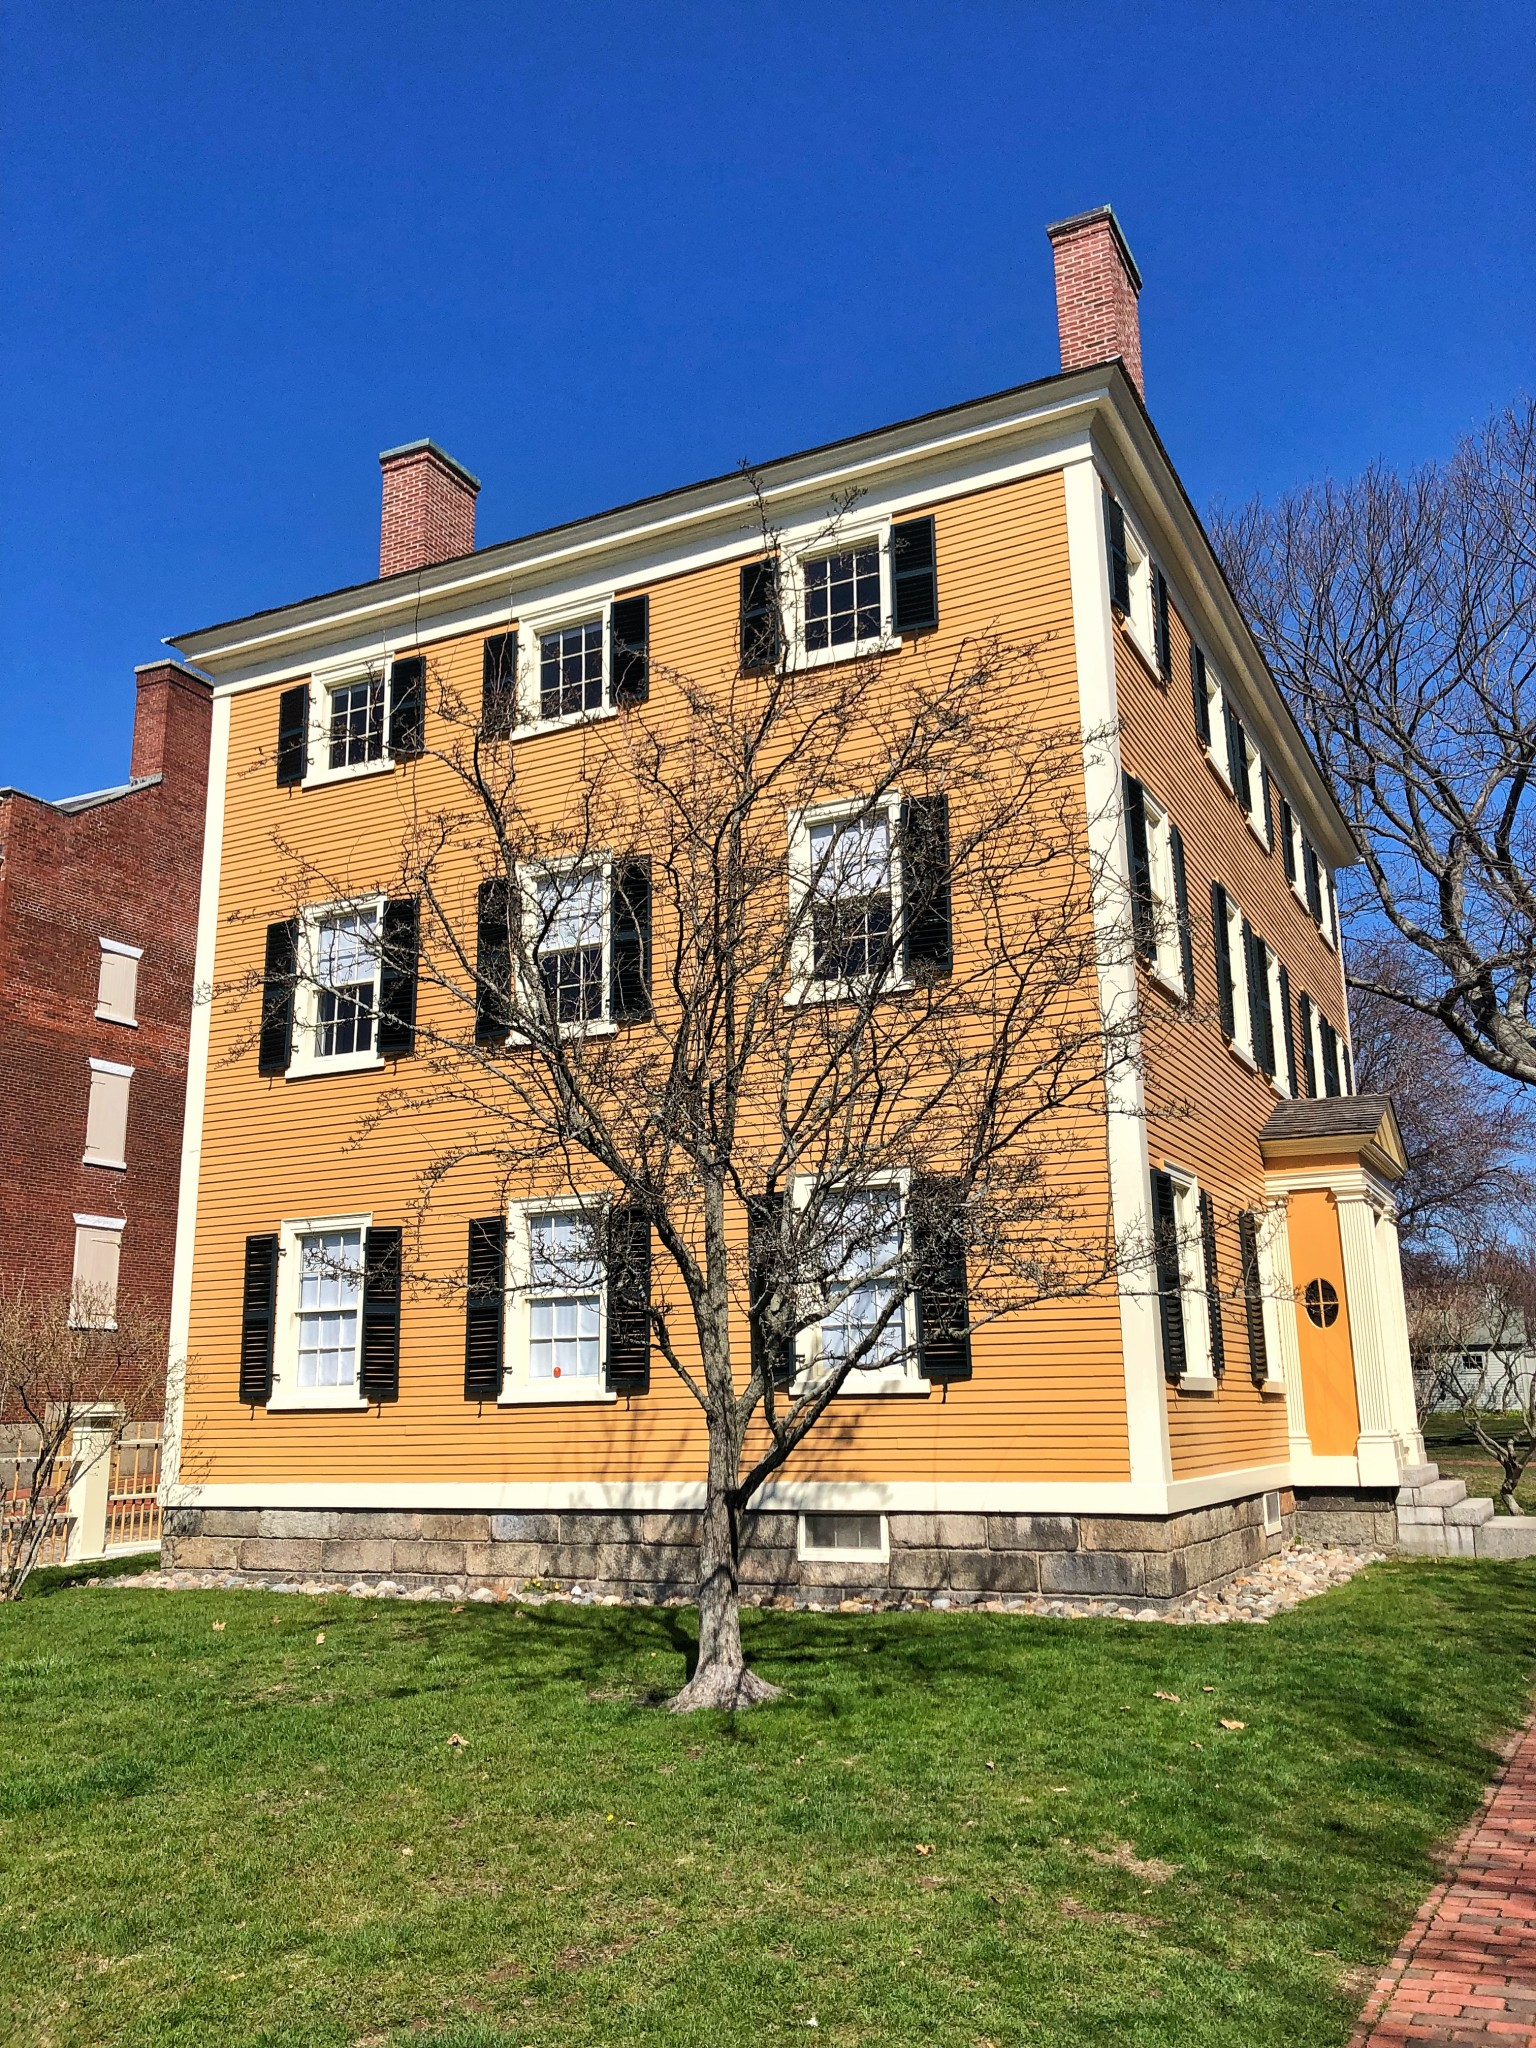 Benjamin Hawkes House, salem, massachusetts, the-alyst.com